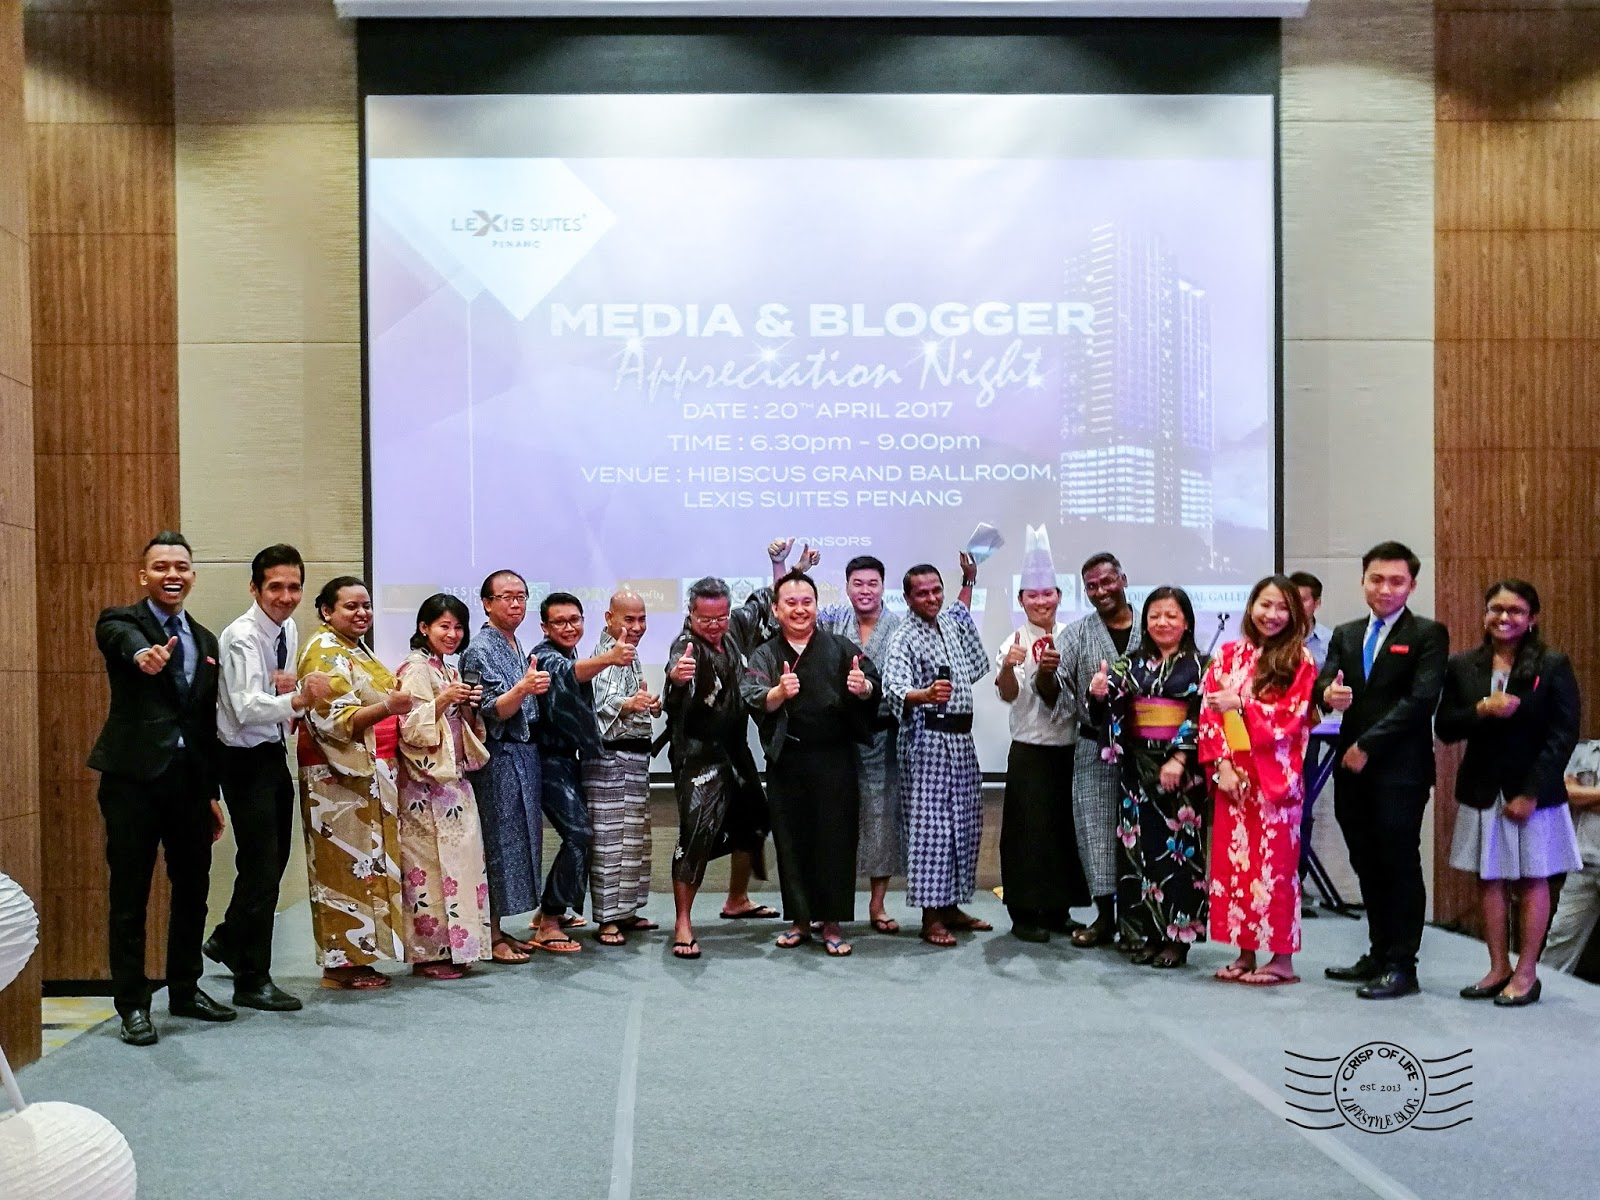 Media & Blogger Appreciation Dinner by Lexis Suite Penang